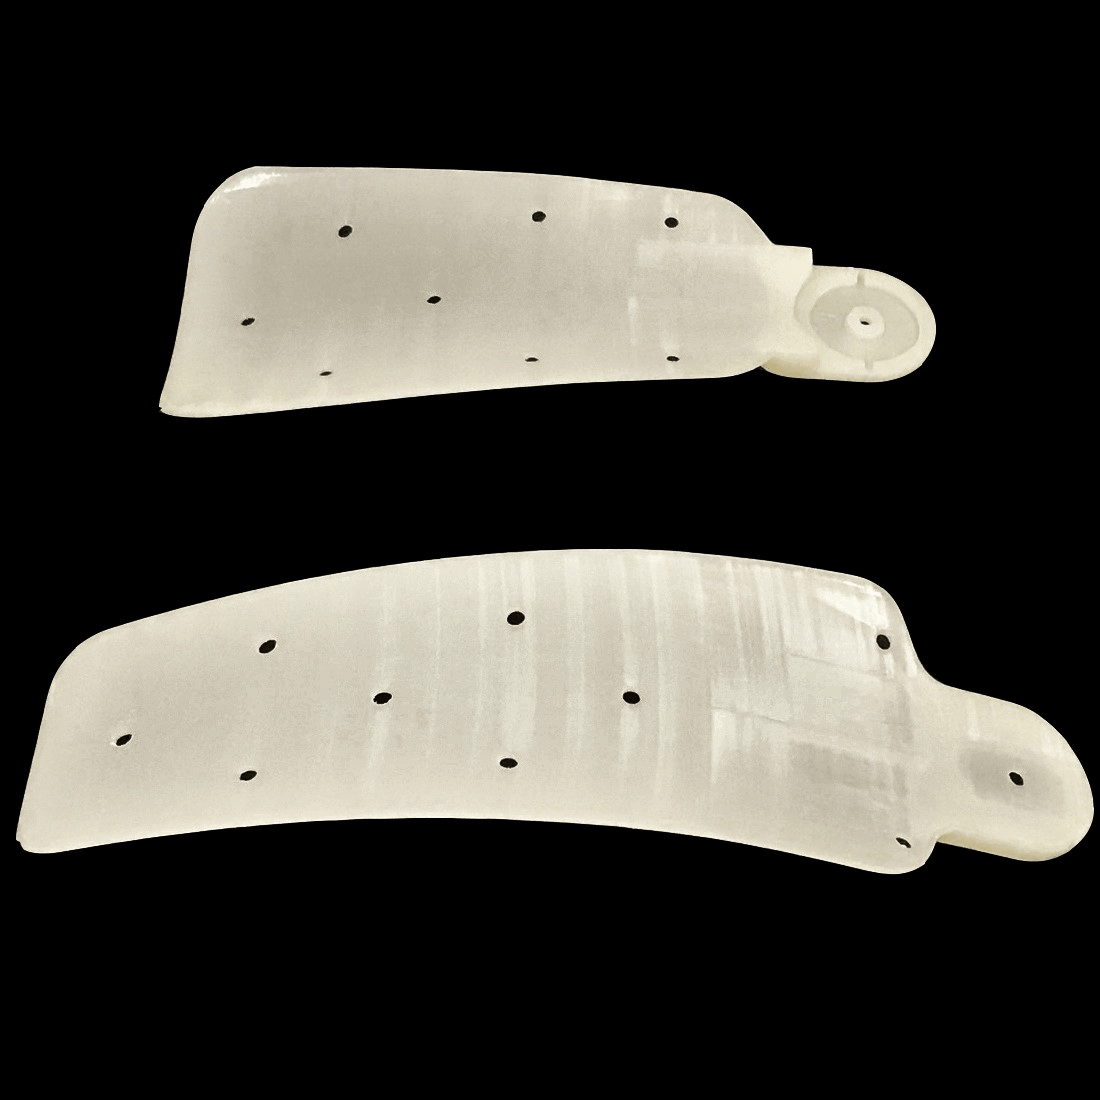 3d-Printed-nylon-prototype-taulman3d-thigh-pads-medical-application